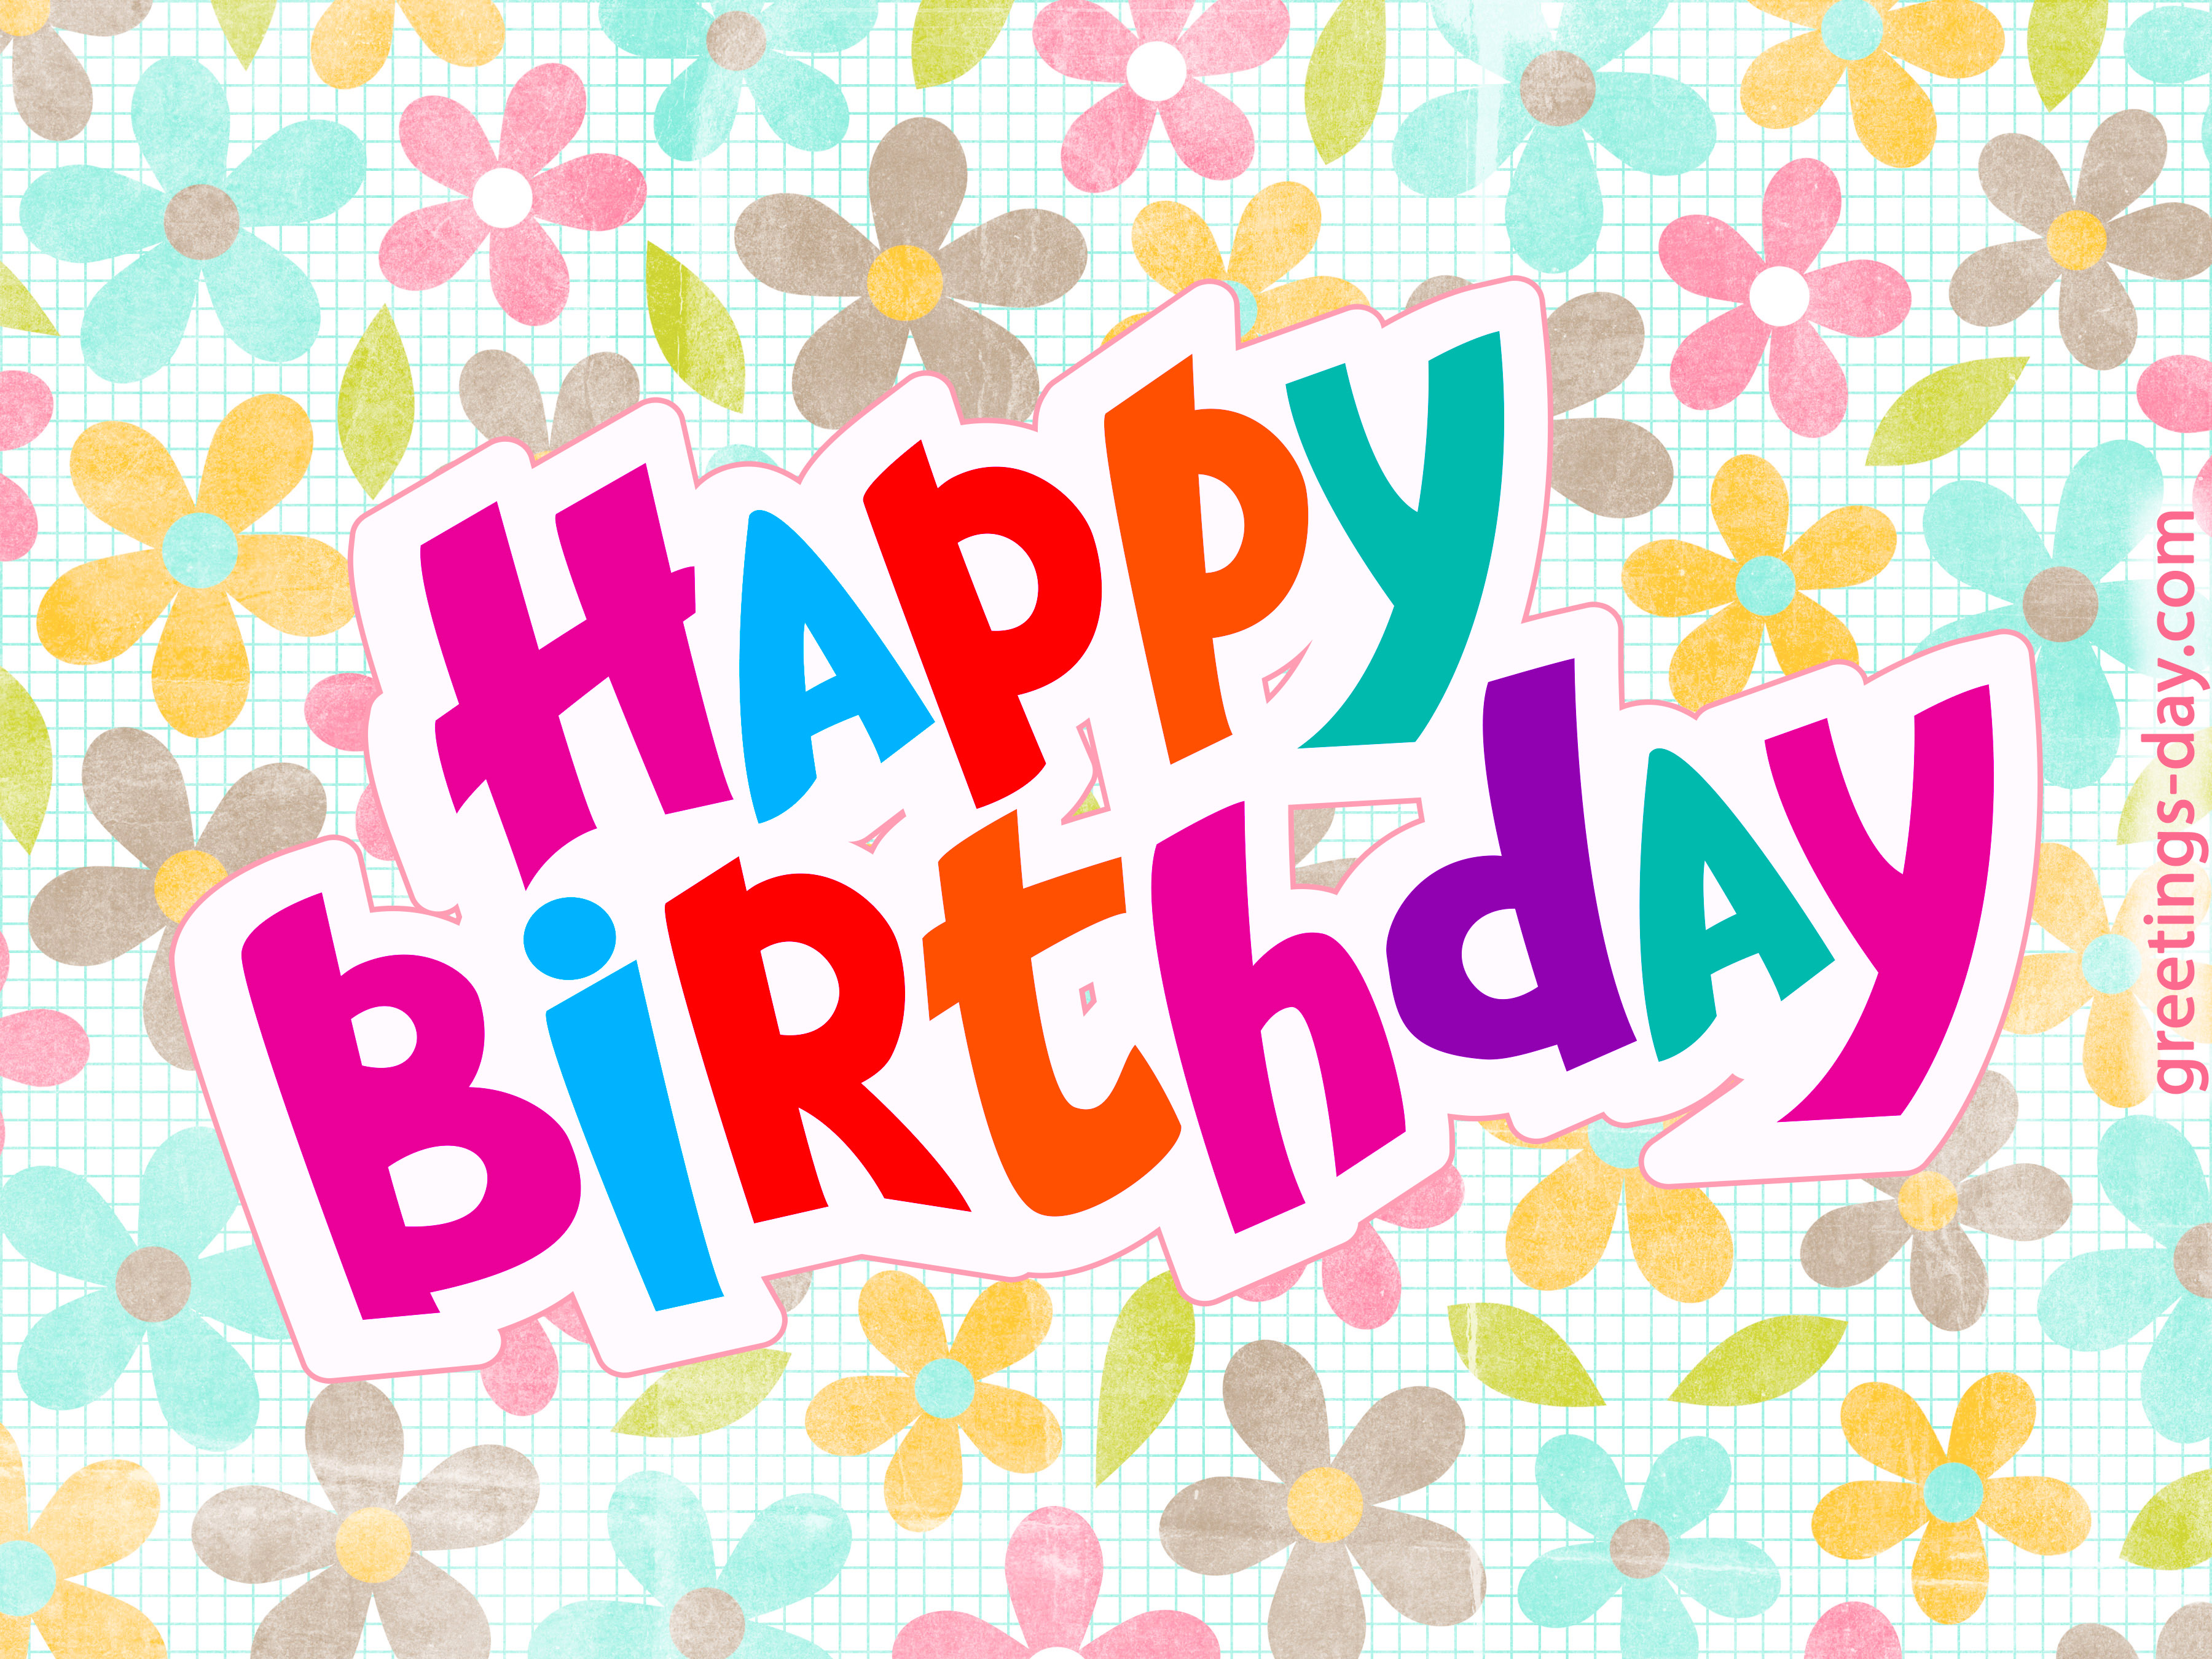 Happy Birthday Greeting Cards. Share Image To You Friend